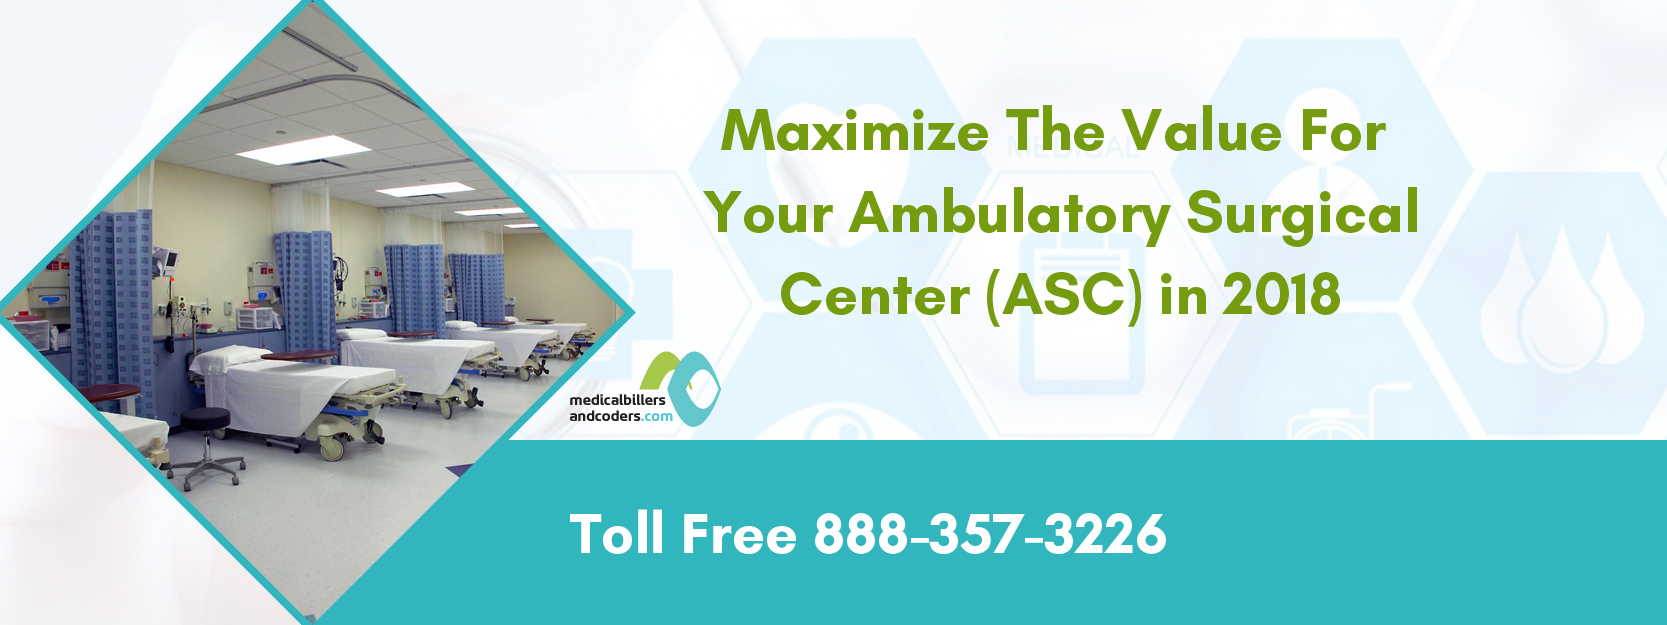 maximize-the-value-for-your-ambulatory-surgical-center